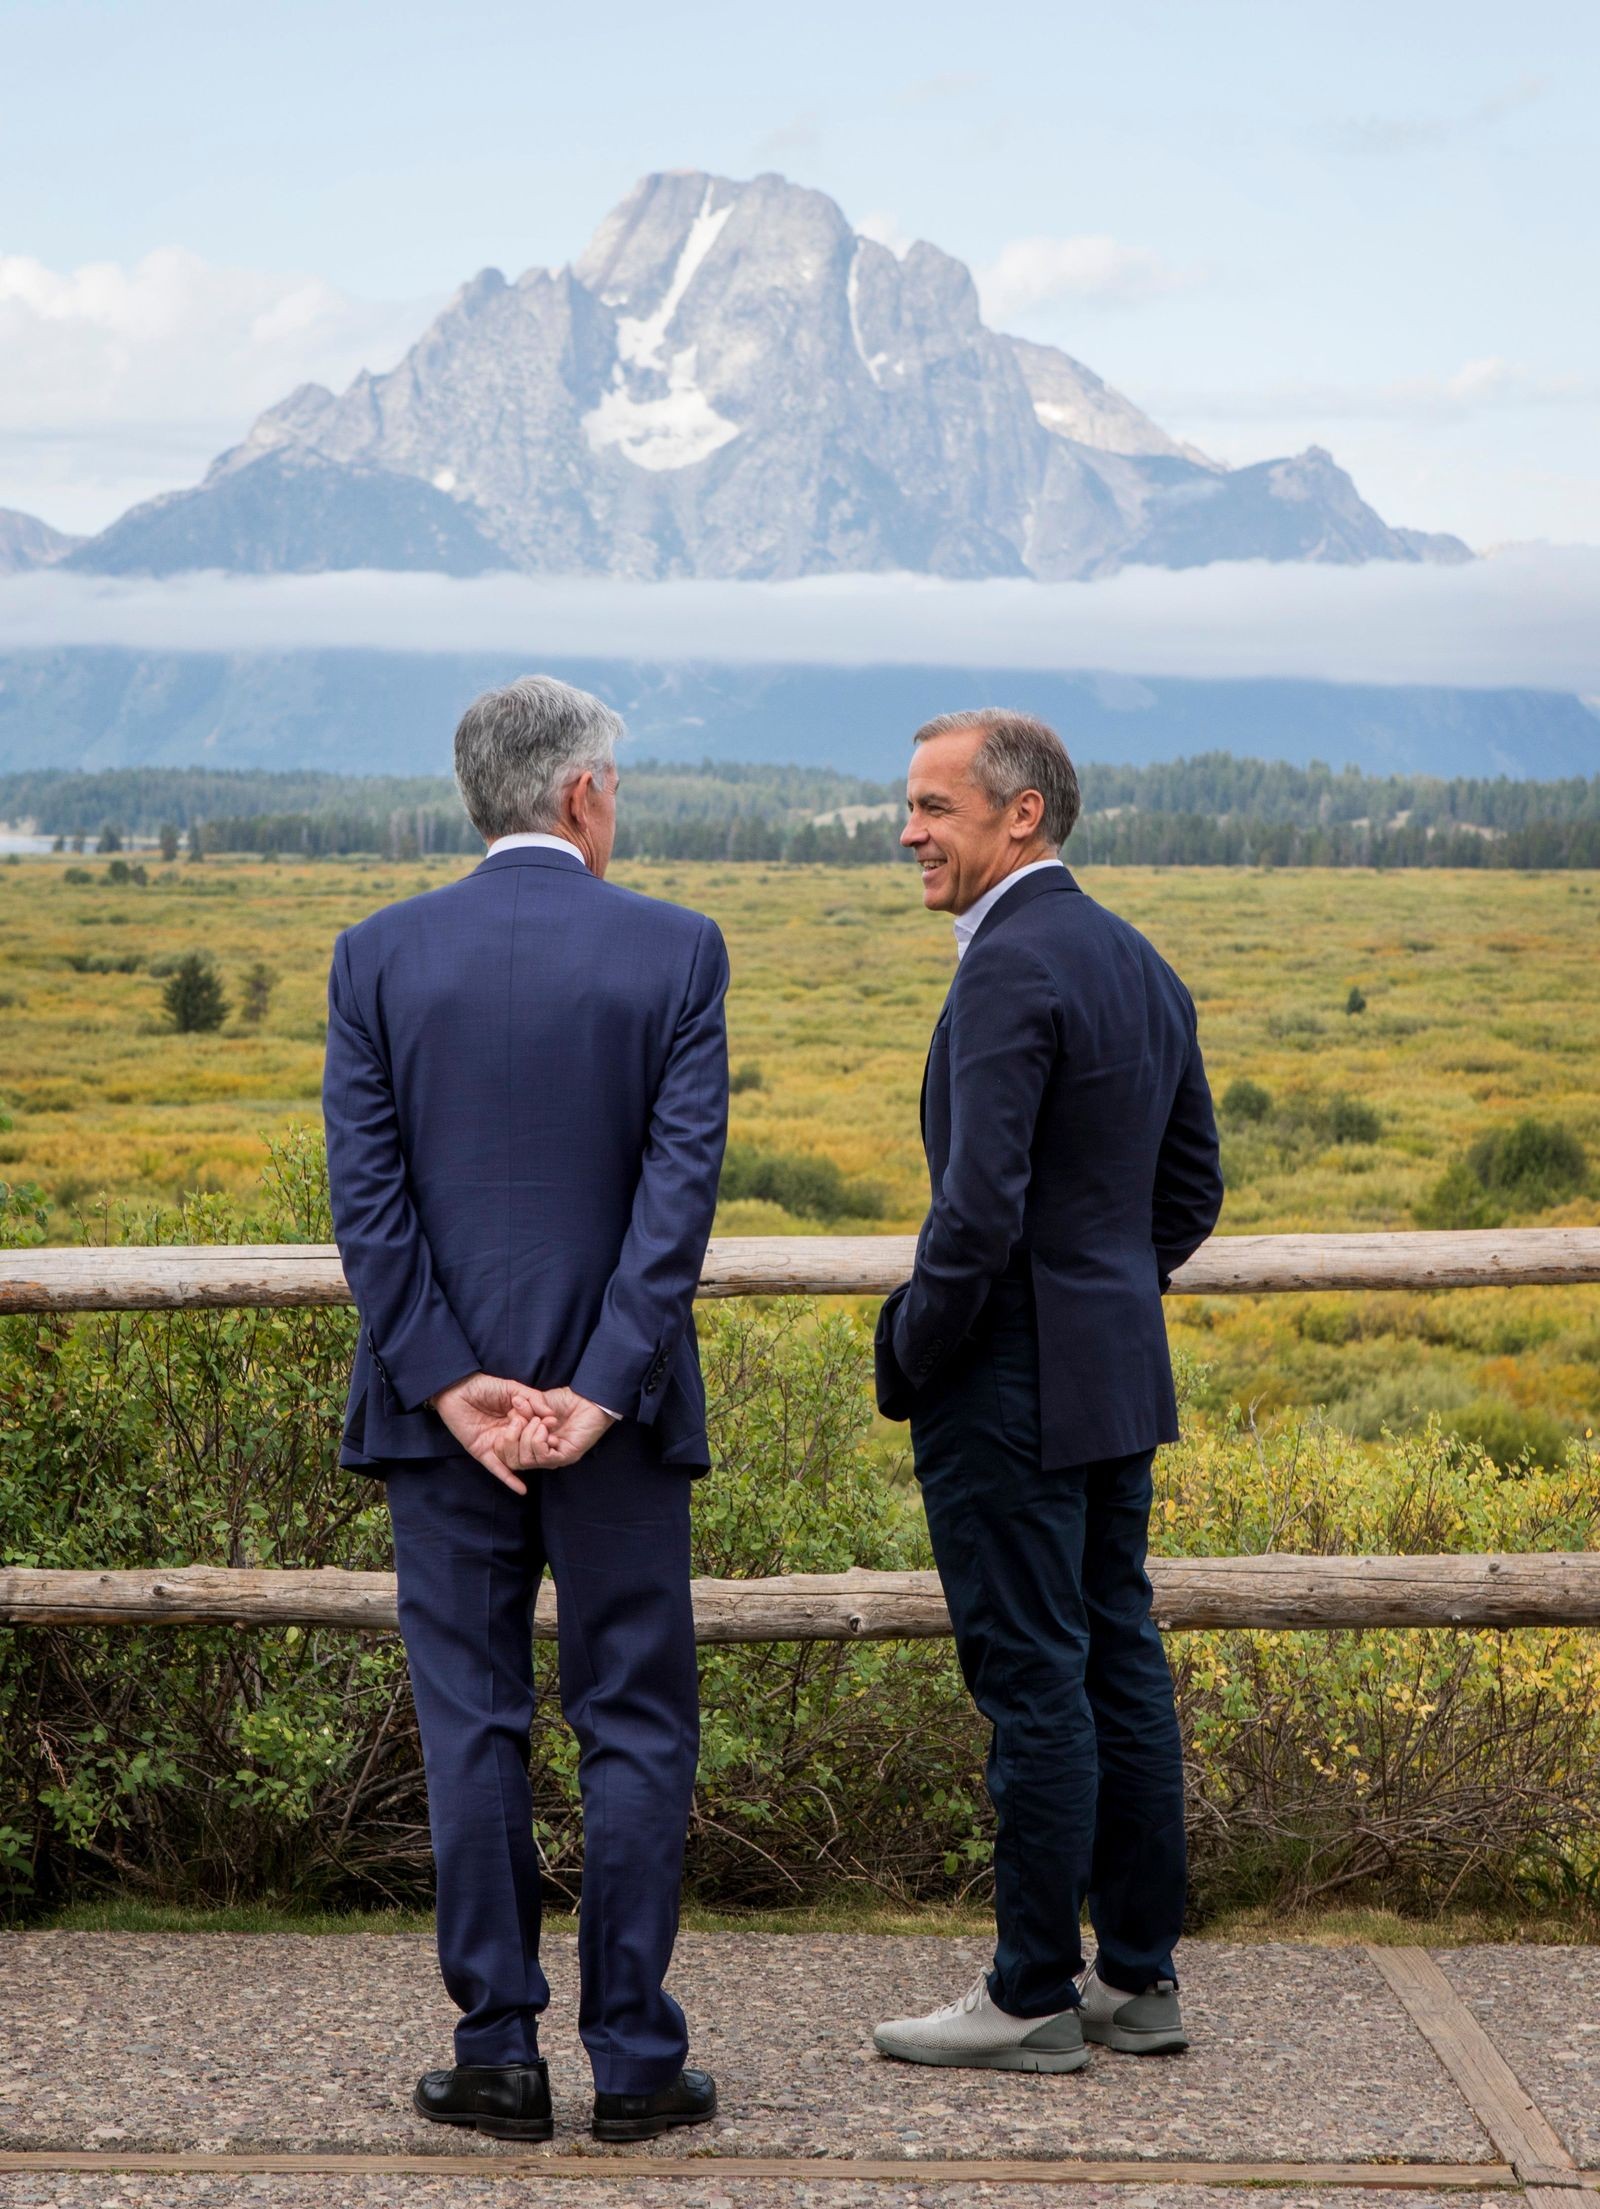 Federal Reserve Chairman Jerome Powell, left, and Bank of England Governor Mark Carney, right, pause in front of Mt. Moran after Powell's speech at the Jackson Hole Economic Policy Symposium on Friday, Aug. 23, 2019, in Jackson Hole, Wyo. (AP Photo/Amber Baesler)